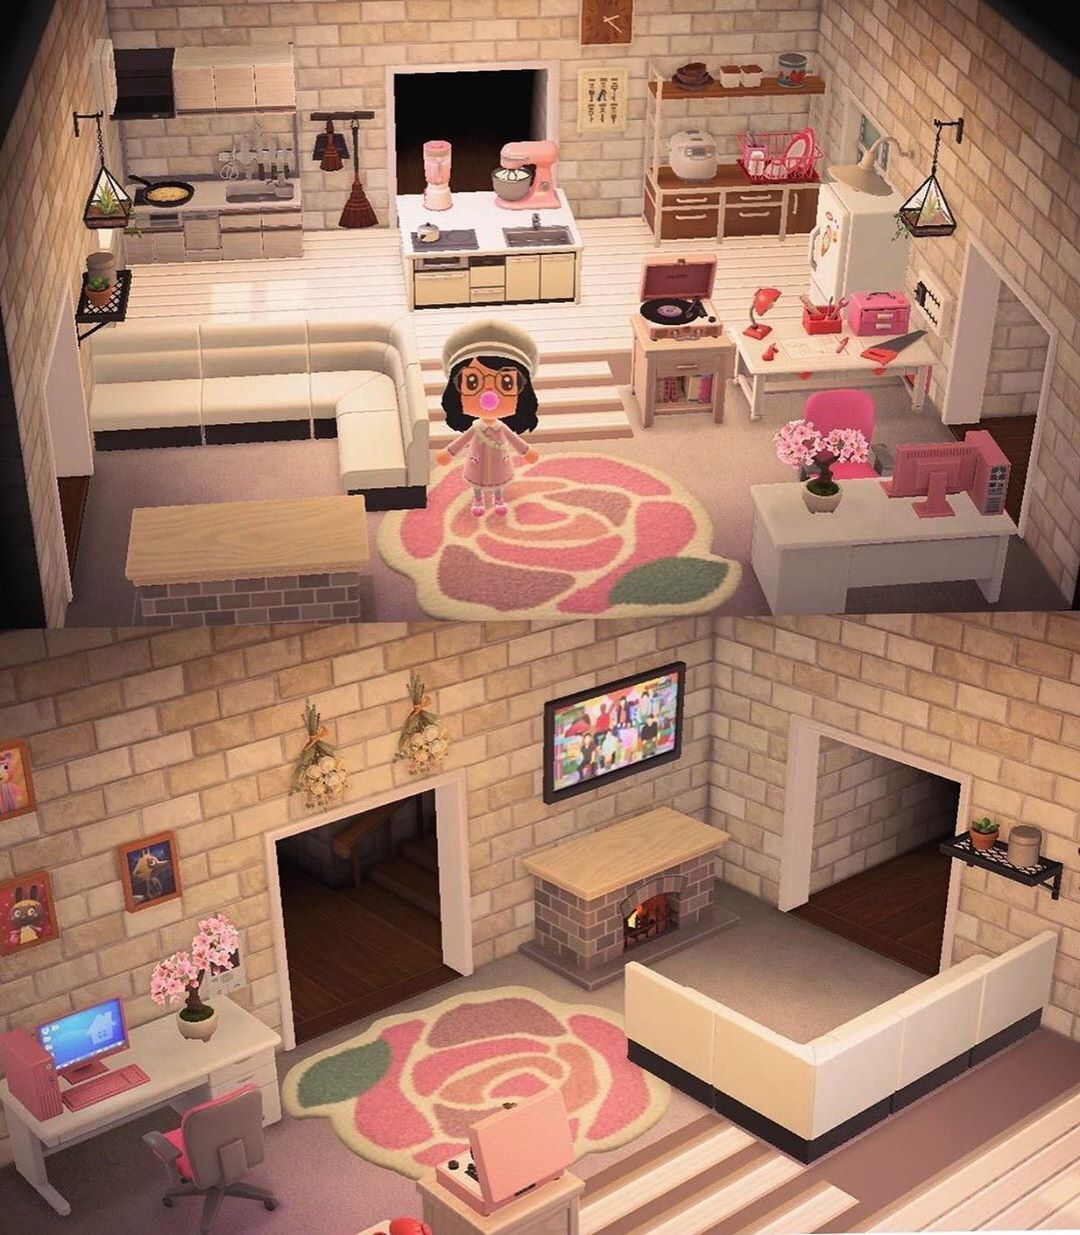 Animal Crossing Inspiration On Instagram Kitchen And Living Room In One By Ariepudo Reddit Animal Crossing Animal Crossing Game Animal Crossing 3ds